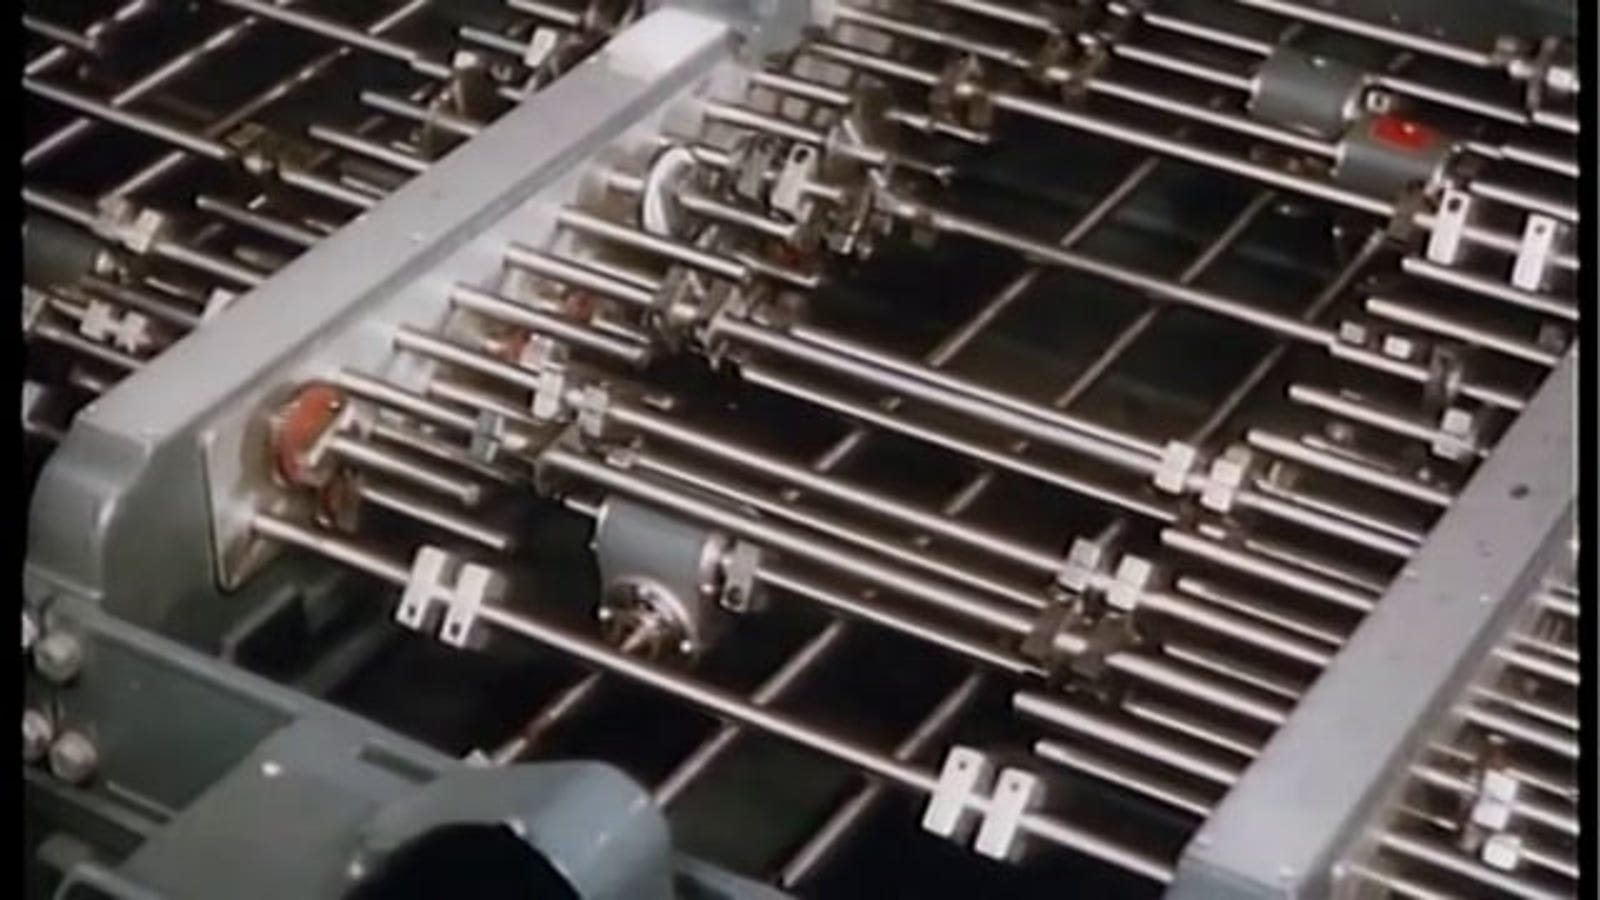 UCLA's 1948 Mechanical Computer Was Simply Gorgeous To Watch in Action